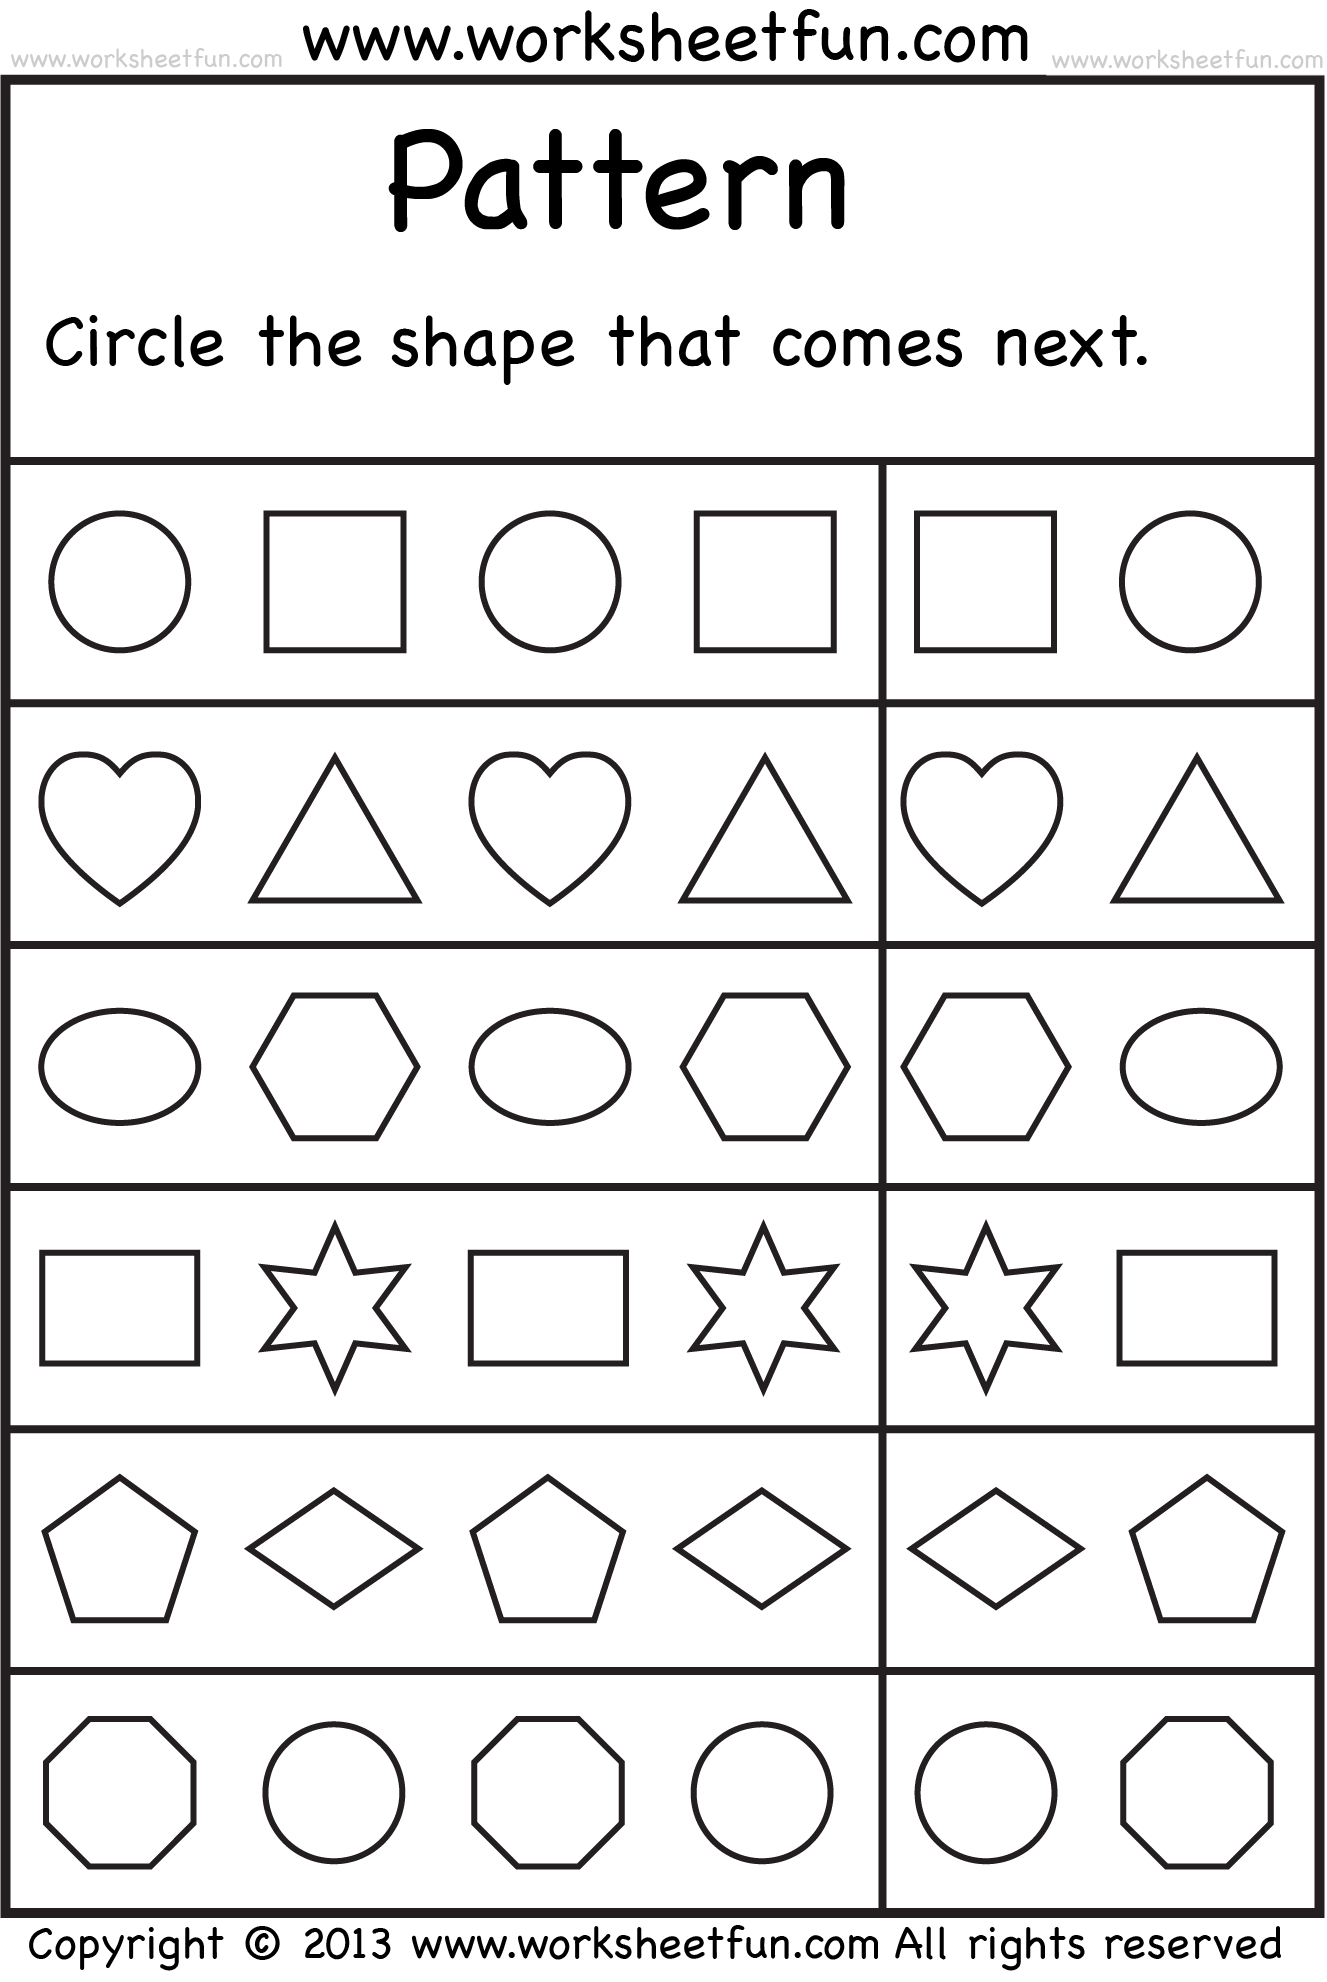 Weirdmailus  Pleasant  Images About School Worksheets On Pinterest  Number Words  With Remarkable  Images About School Worksheets On Pinterest  Number Words Alphabet Worksheets And Free Printable Kindergarten Worksheets With Amazing Linear Equations Worksheets Also Stoichiometry Worksheet  In Addition Molarity Worksheet  And Food Pyramid Worksheets As Well As Chemistry Unit  Worksheet  Answer Key Additionally Goodheart Willcox Worksheets Answers From Pinterestcom With Weirdmailus  Remarkable  Images About School Worksheets On Pinterest  Number Words  With Amazing  Images About School Worksheets On Pinterest  Number Words Alphabet Worksheets And Free Printable Kindergarten Worksheets And Pleasant Linear Equations Worksheets Also Stoichiometry Worksheet  In Addition Molarity Worksheet  From Pinterestcom